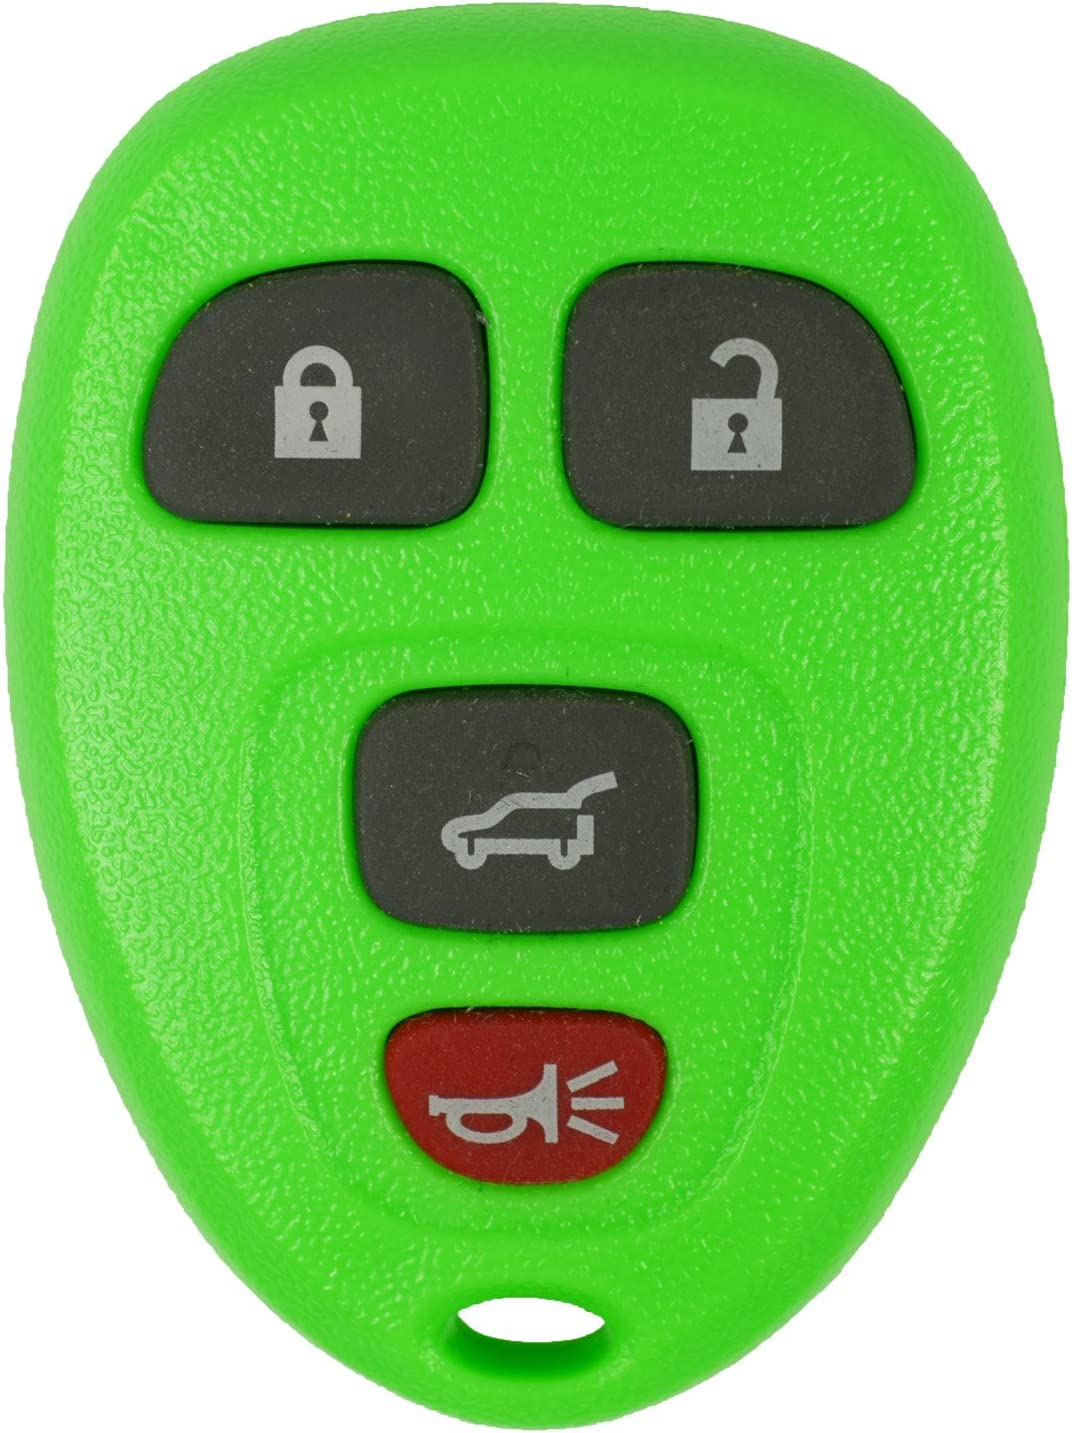 qualitykeylessplus Green Remote Replacement 4 Button Hatch OUC60270 Free KEYTAG Keyless Entry FCC ID